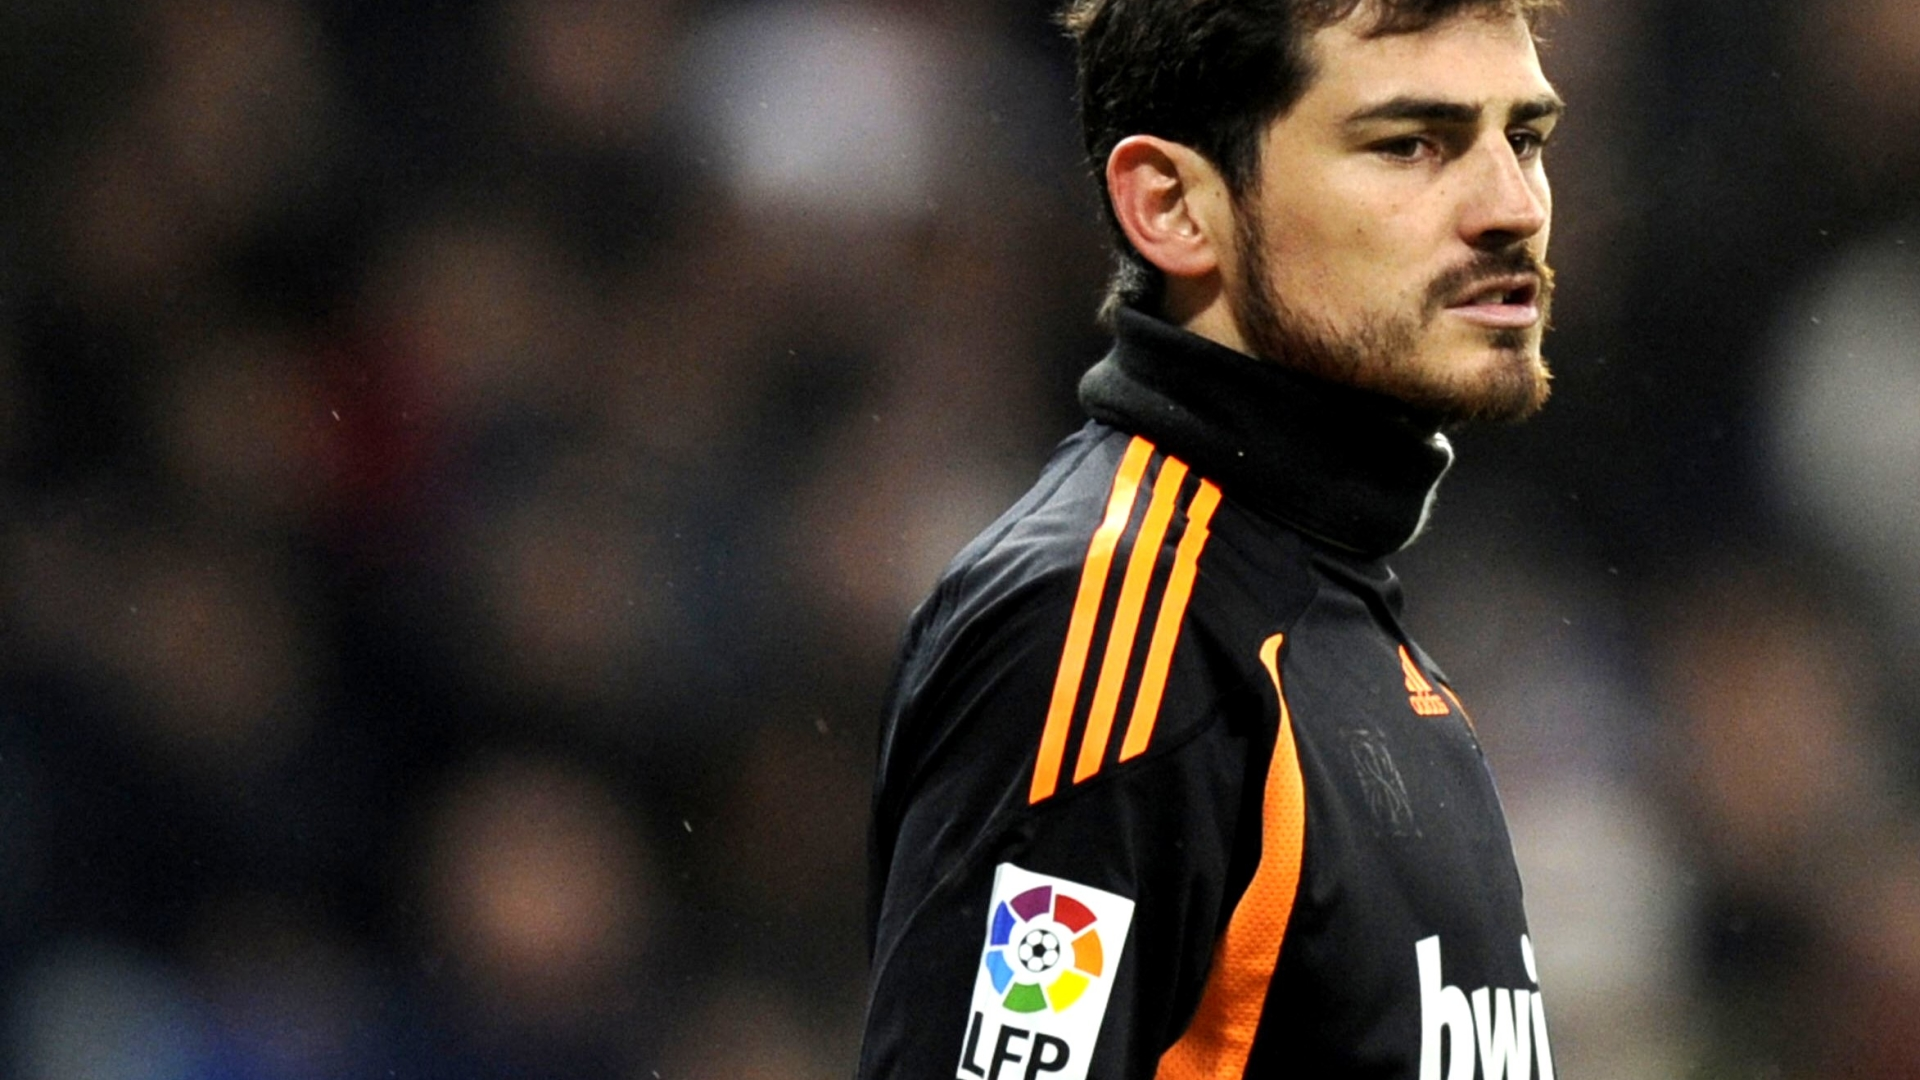 1920x1080 Iker Casillas Football Player Real Madrid 1080p